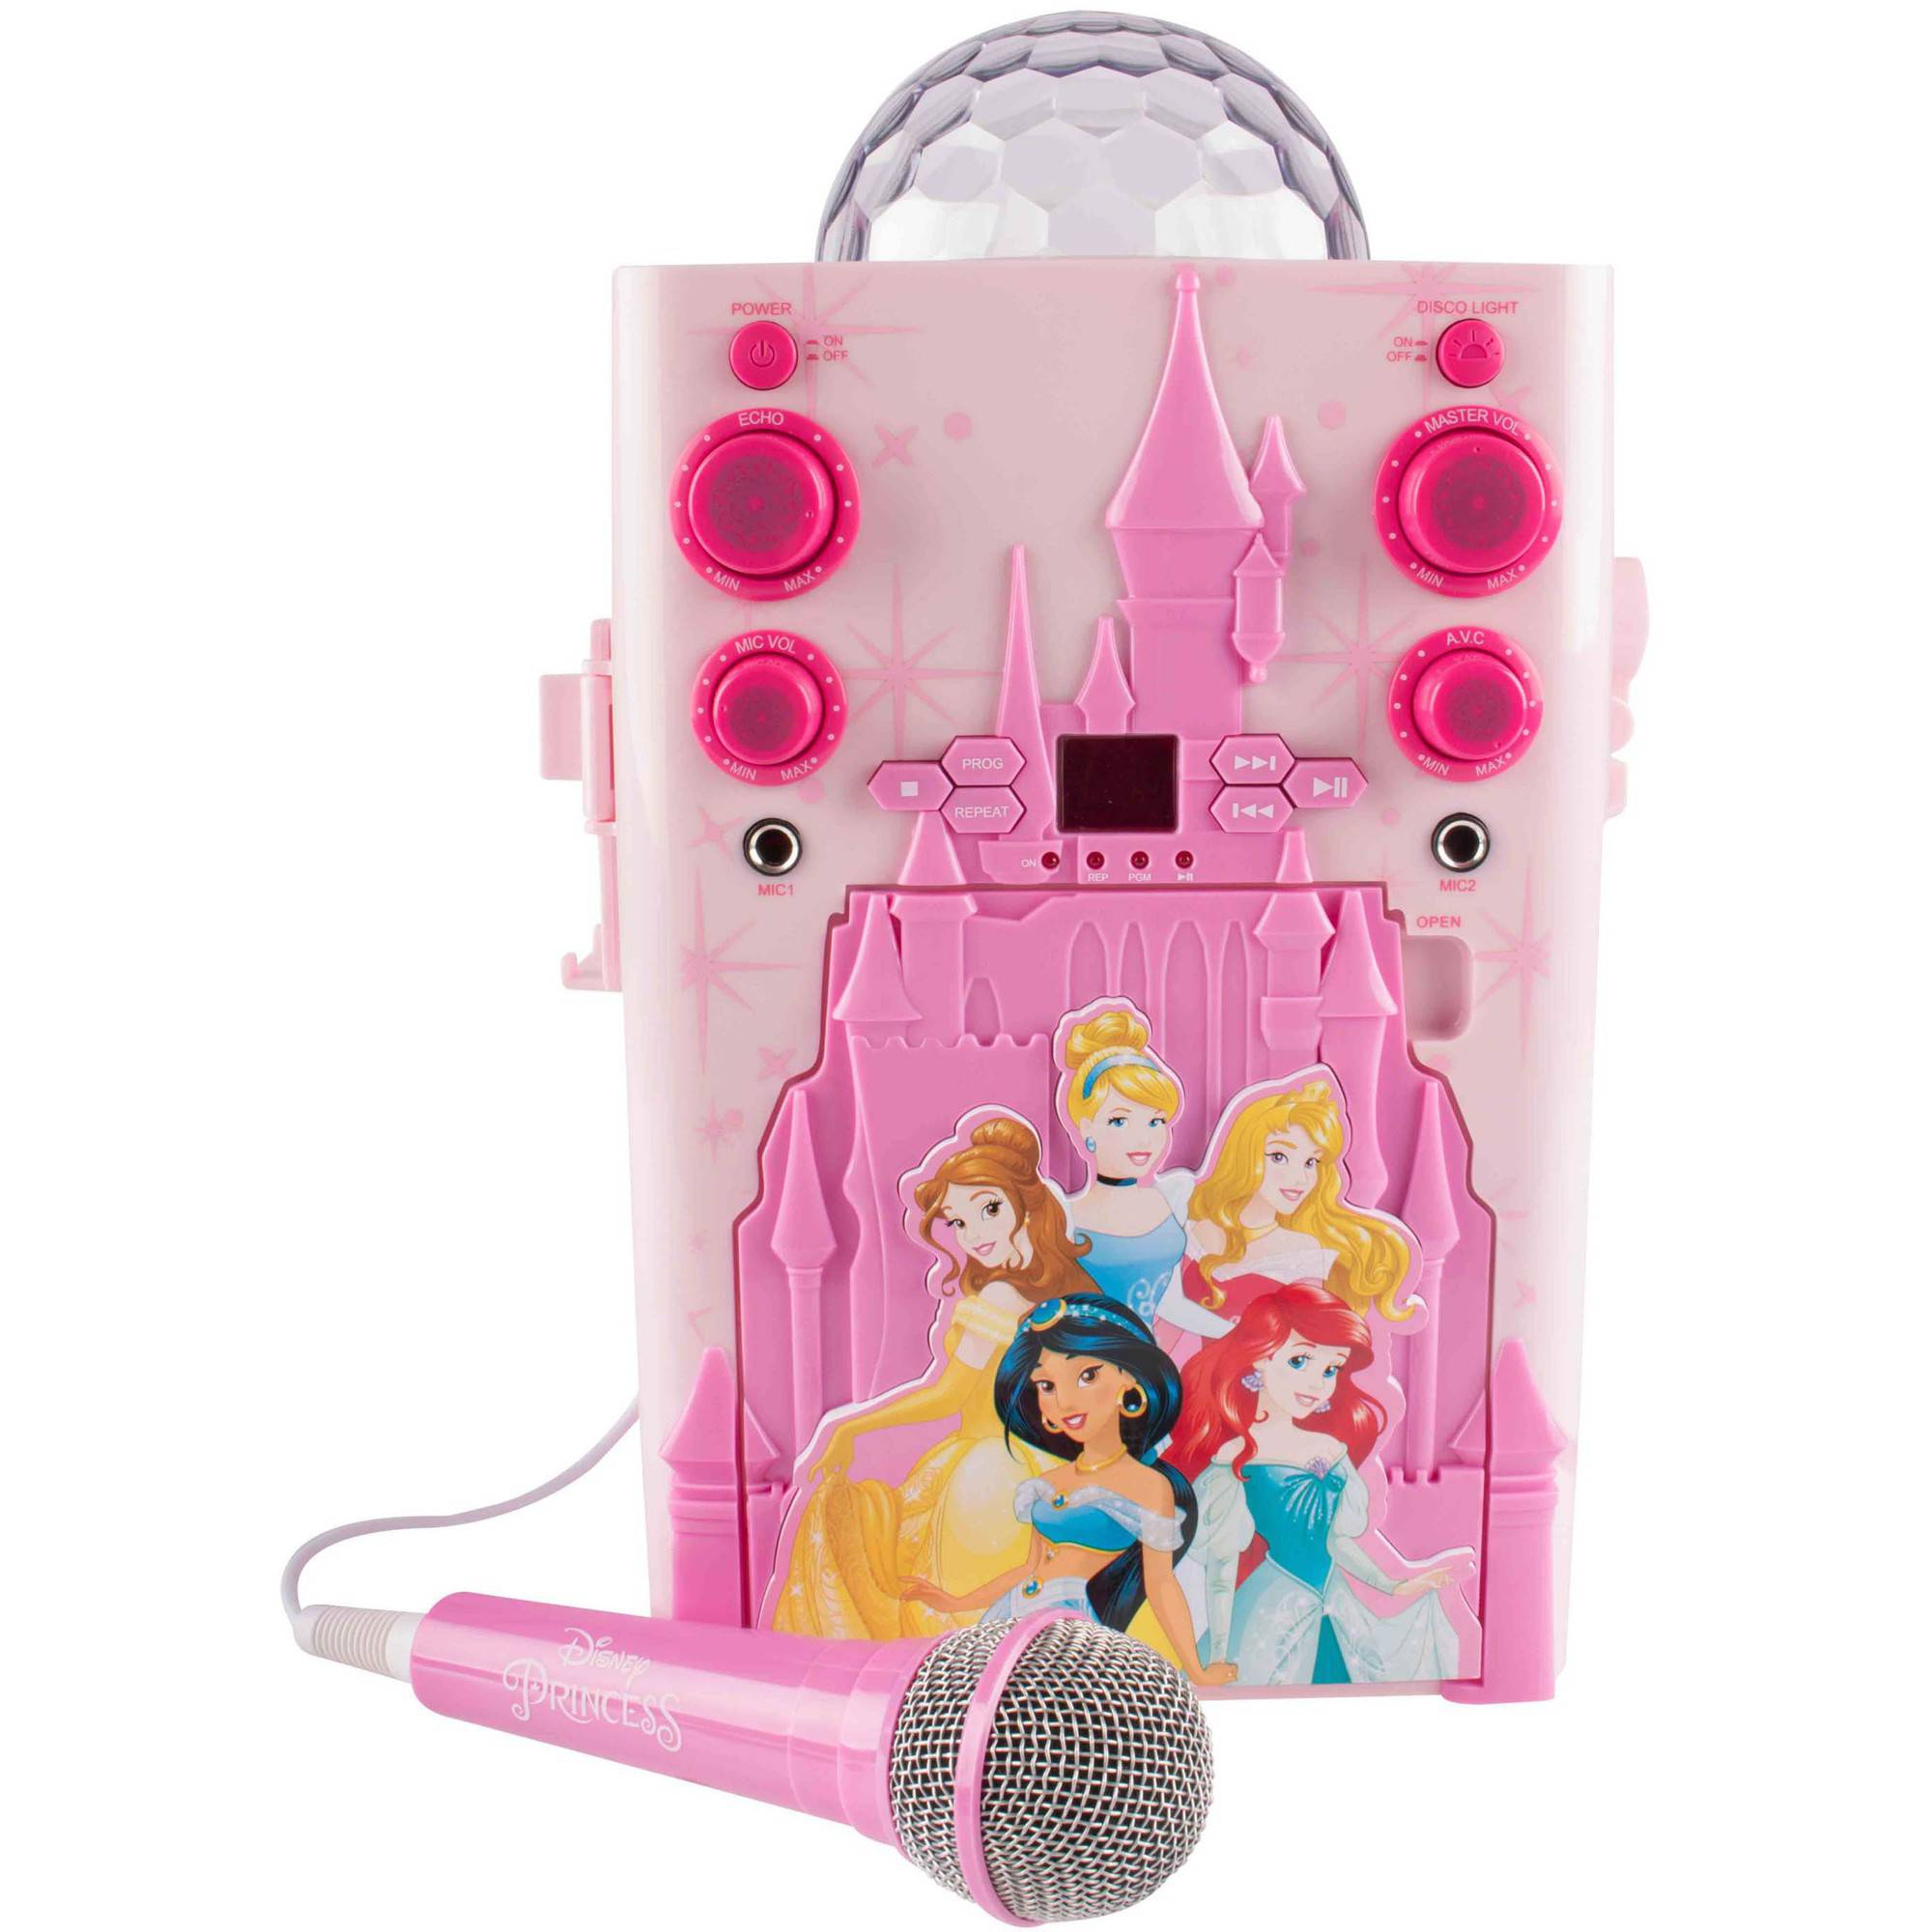 Disney Princess Princess Royal Ball Karaoke